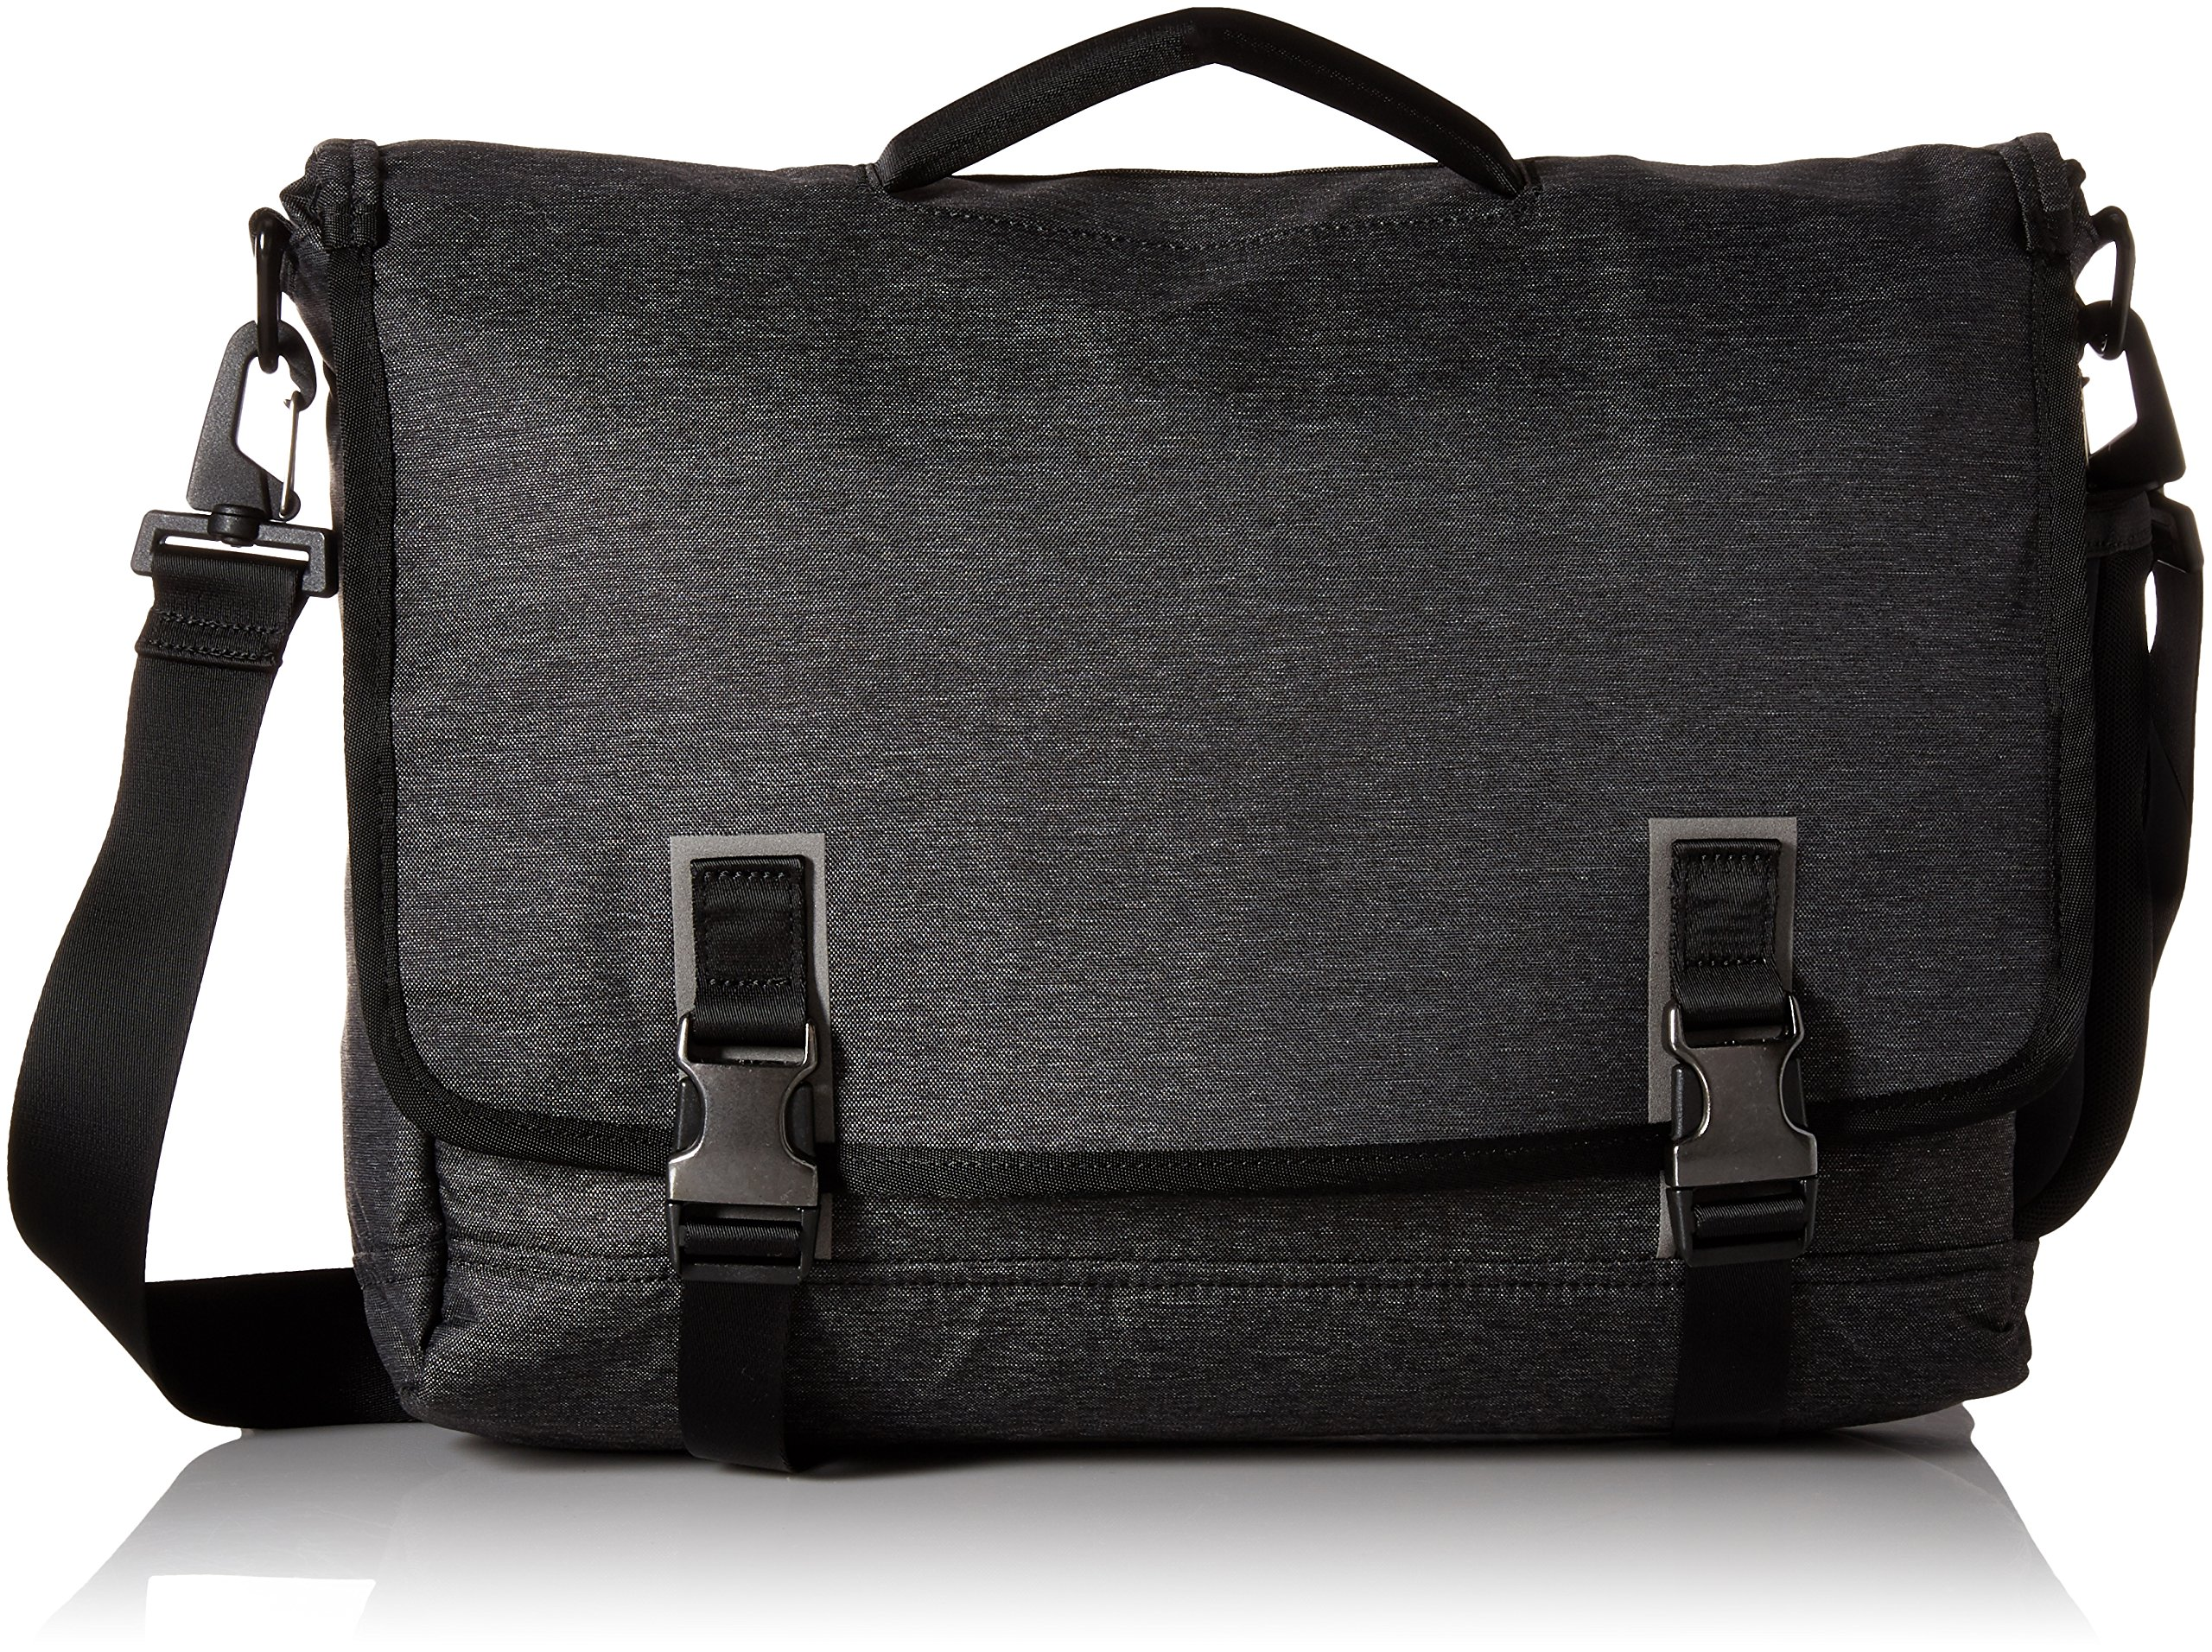 Timbuk2 The Closer Case, Jet Black Static, S, Jet Black Static, Small by Timbuk2